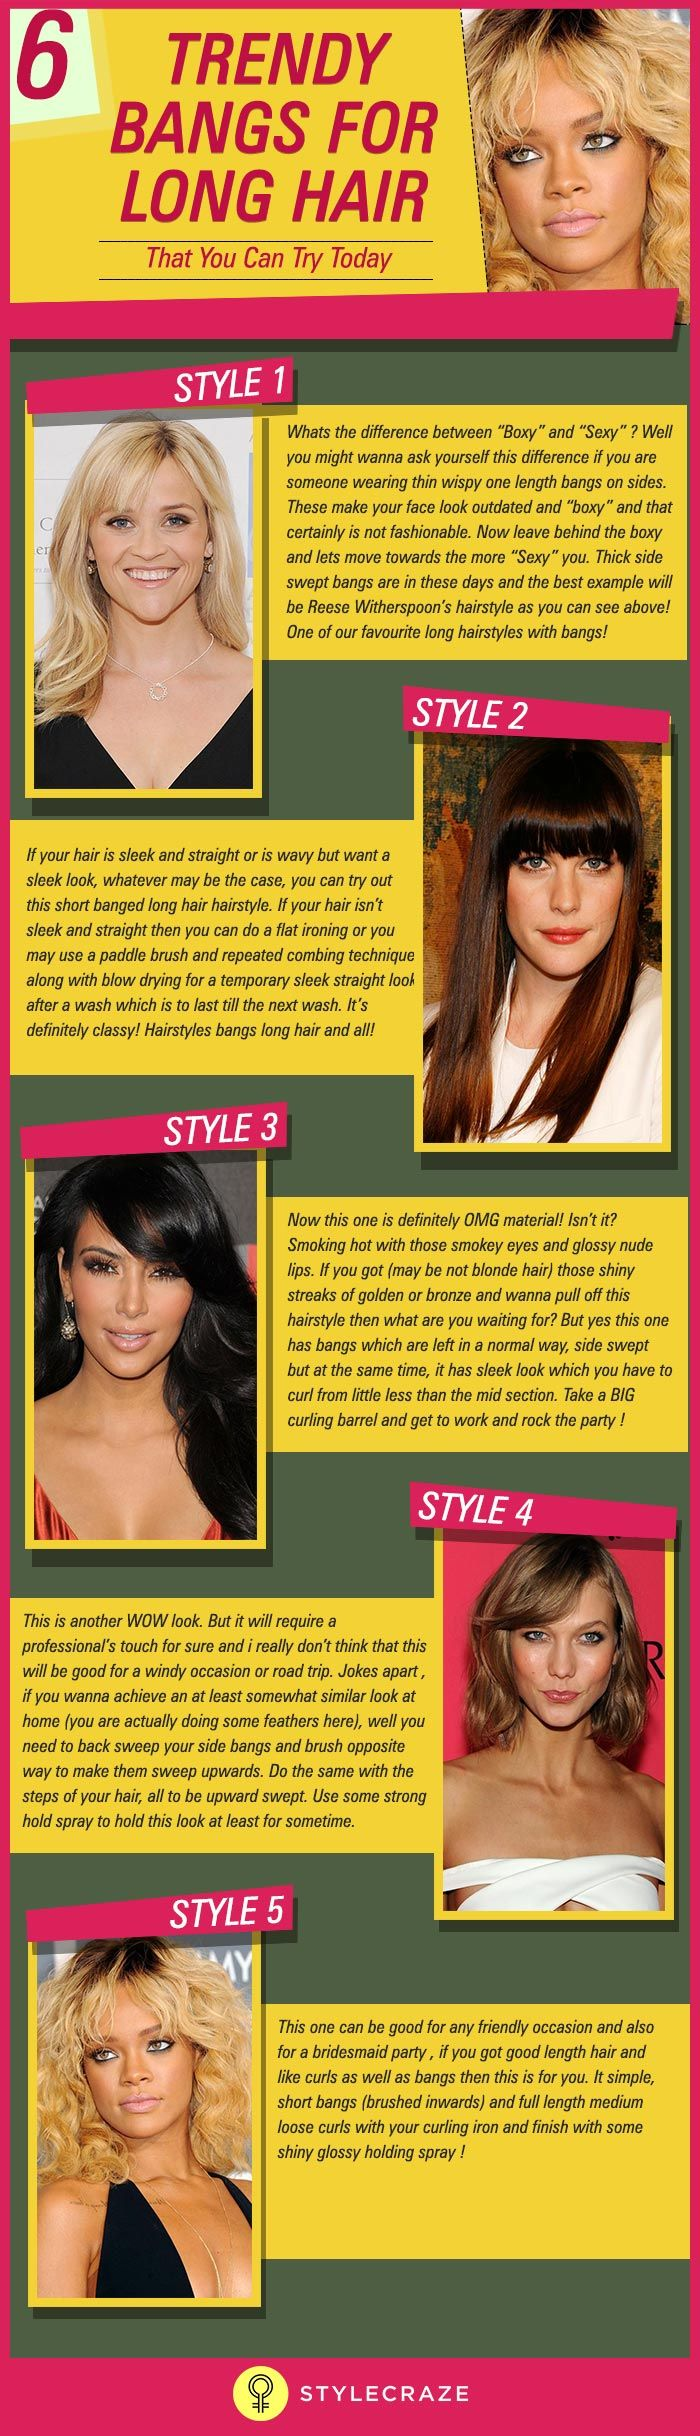 We keep telling you that long hair doesnot necessarily mean boring but you just wont listen to us! So we decided to go ahead and show you how having long hair doesn't hold you back from going for a more modern and delightful look! Bangs hairstyles for long hair is what this article is all about. Here are a few of the latest long hair styles with bangs!